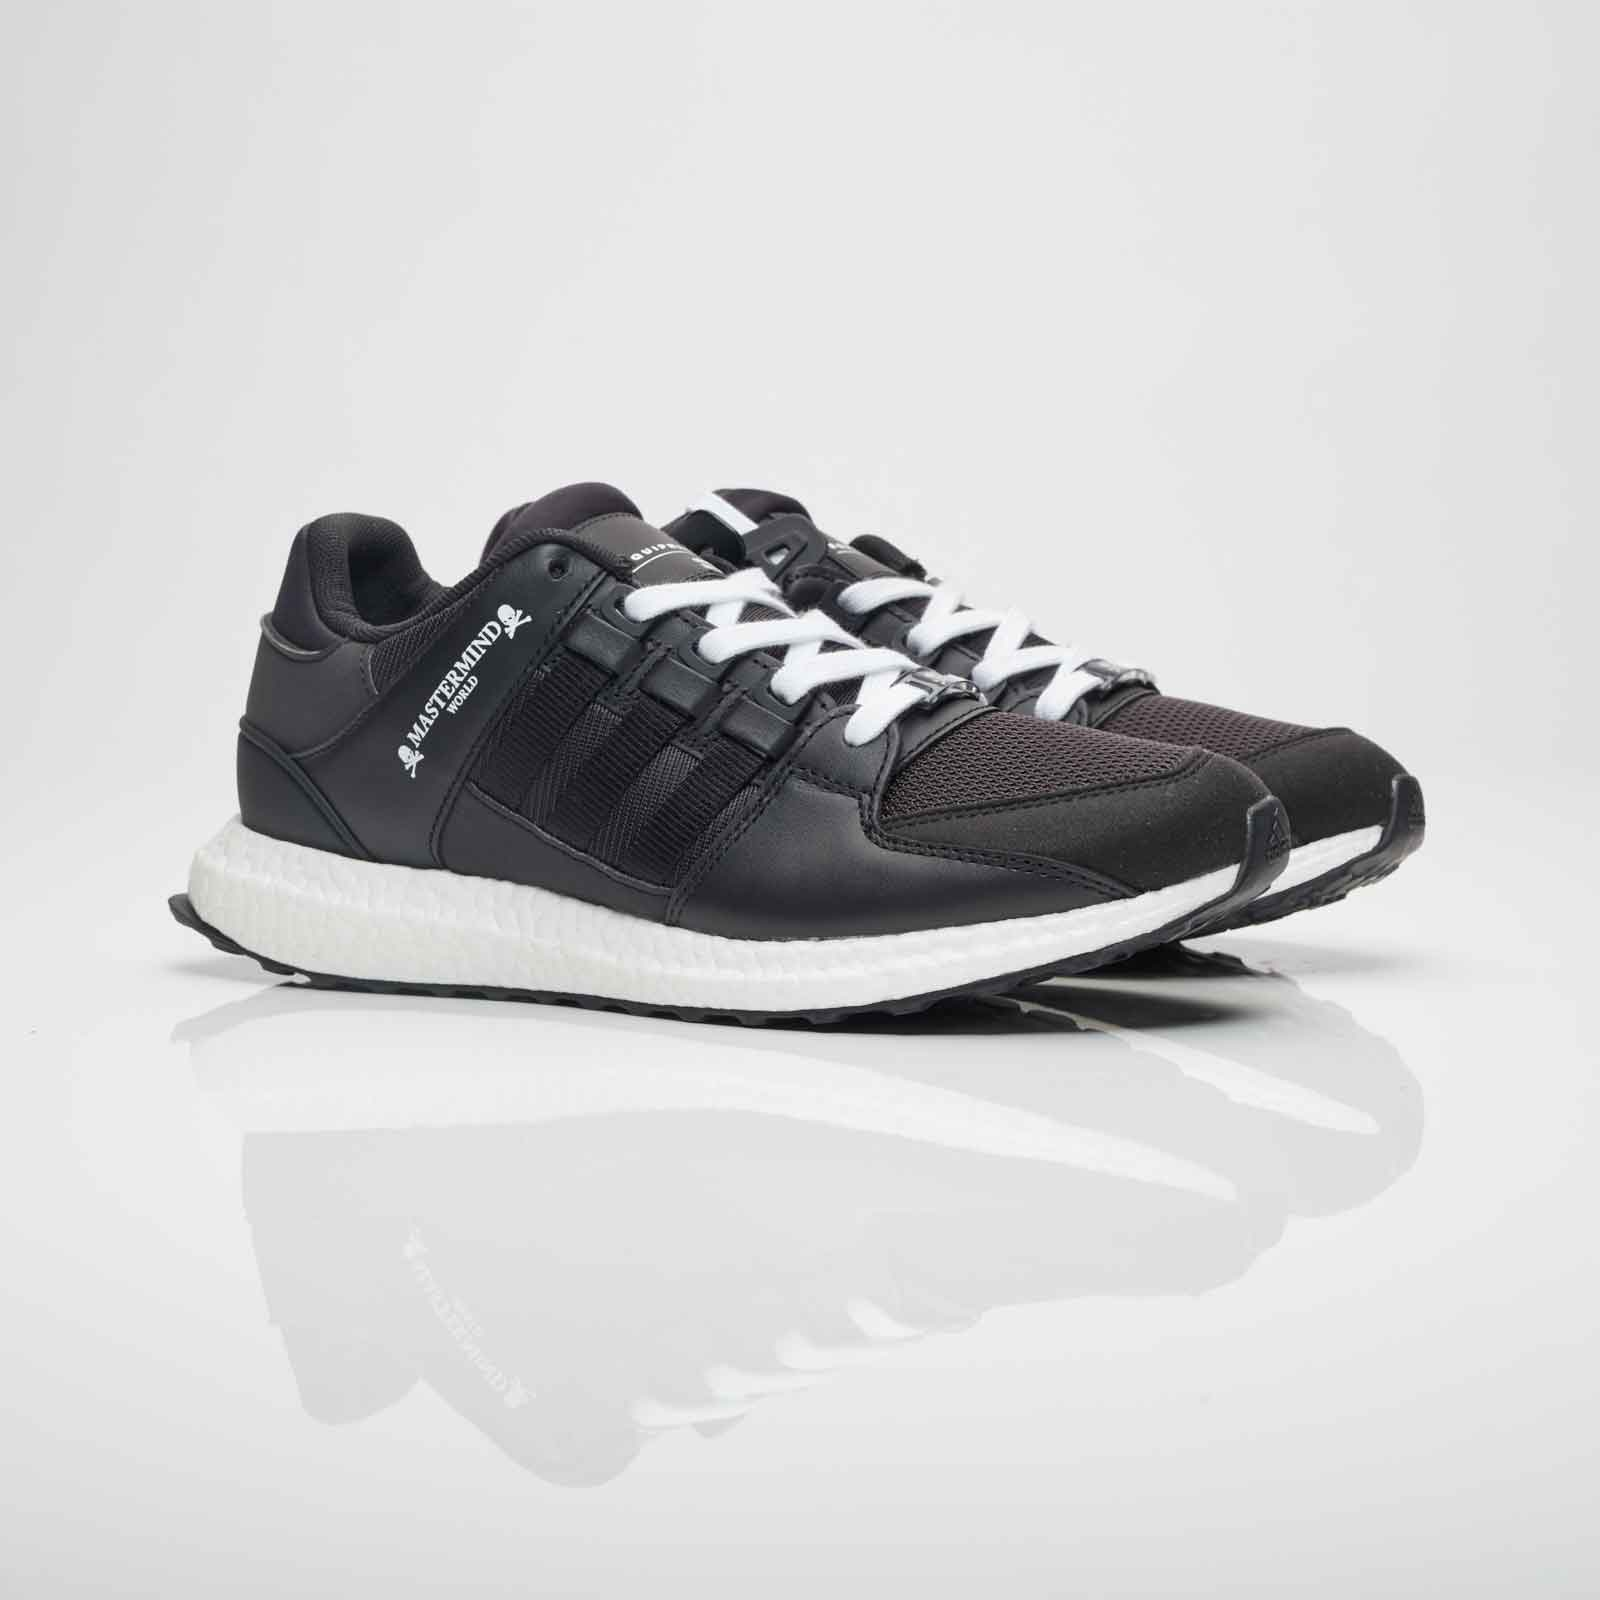 best website ad3fe bc8df adidas EQT Support Ultra by Mastermind World - Cq1826 ...